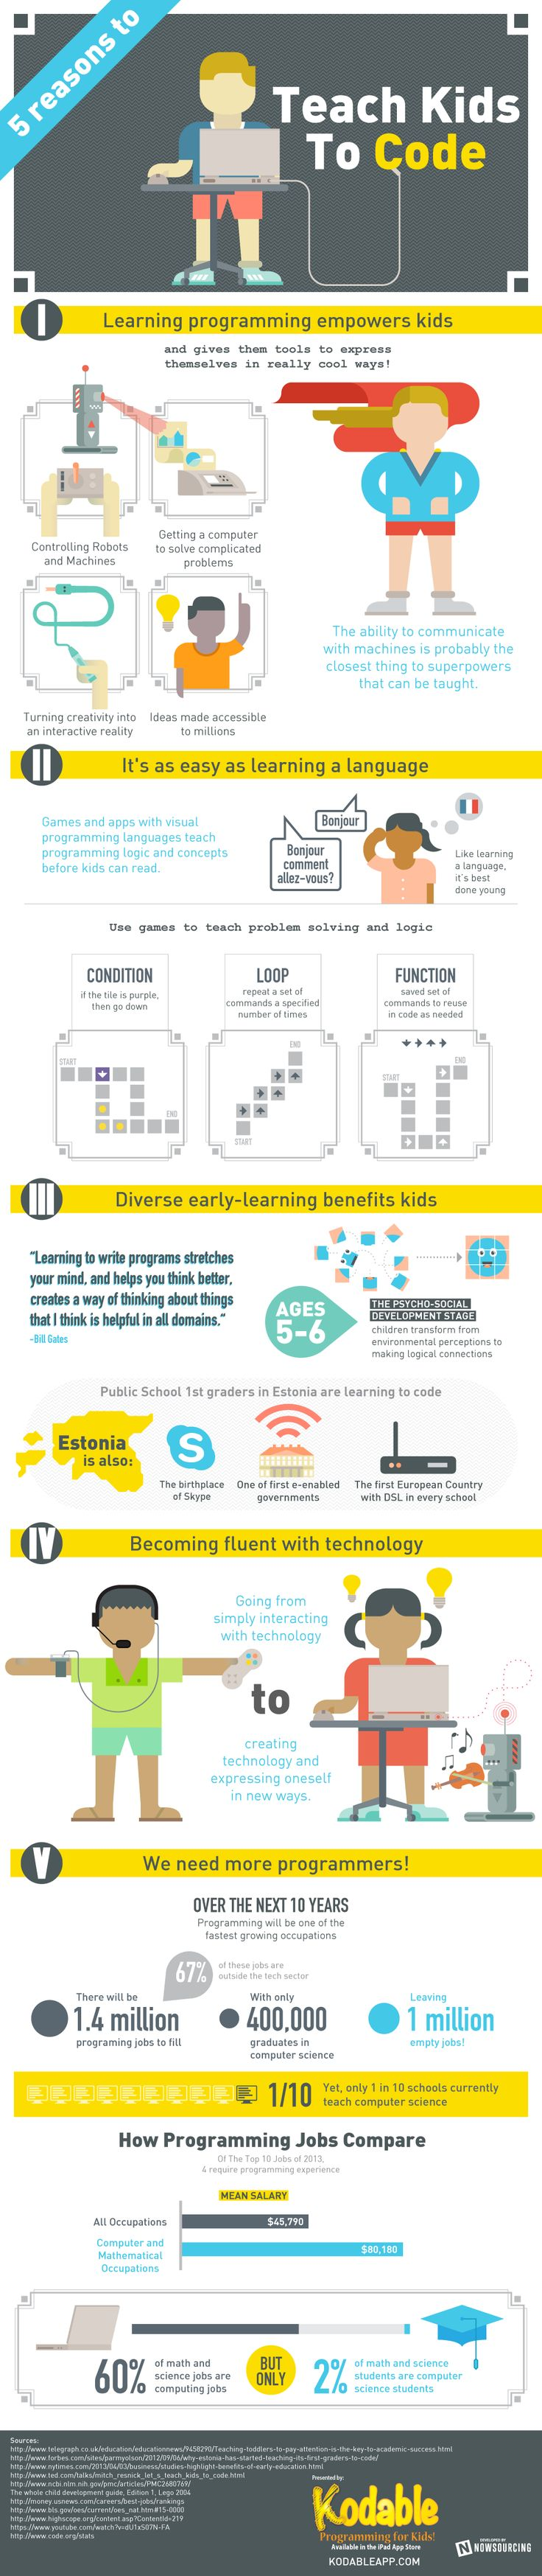 5 Reasons to Teach Kids to Code